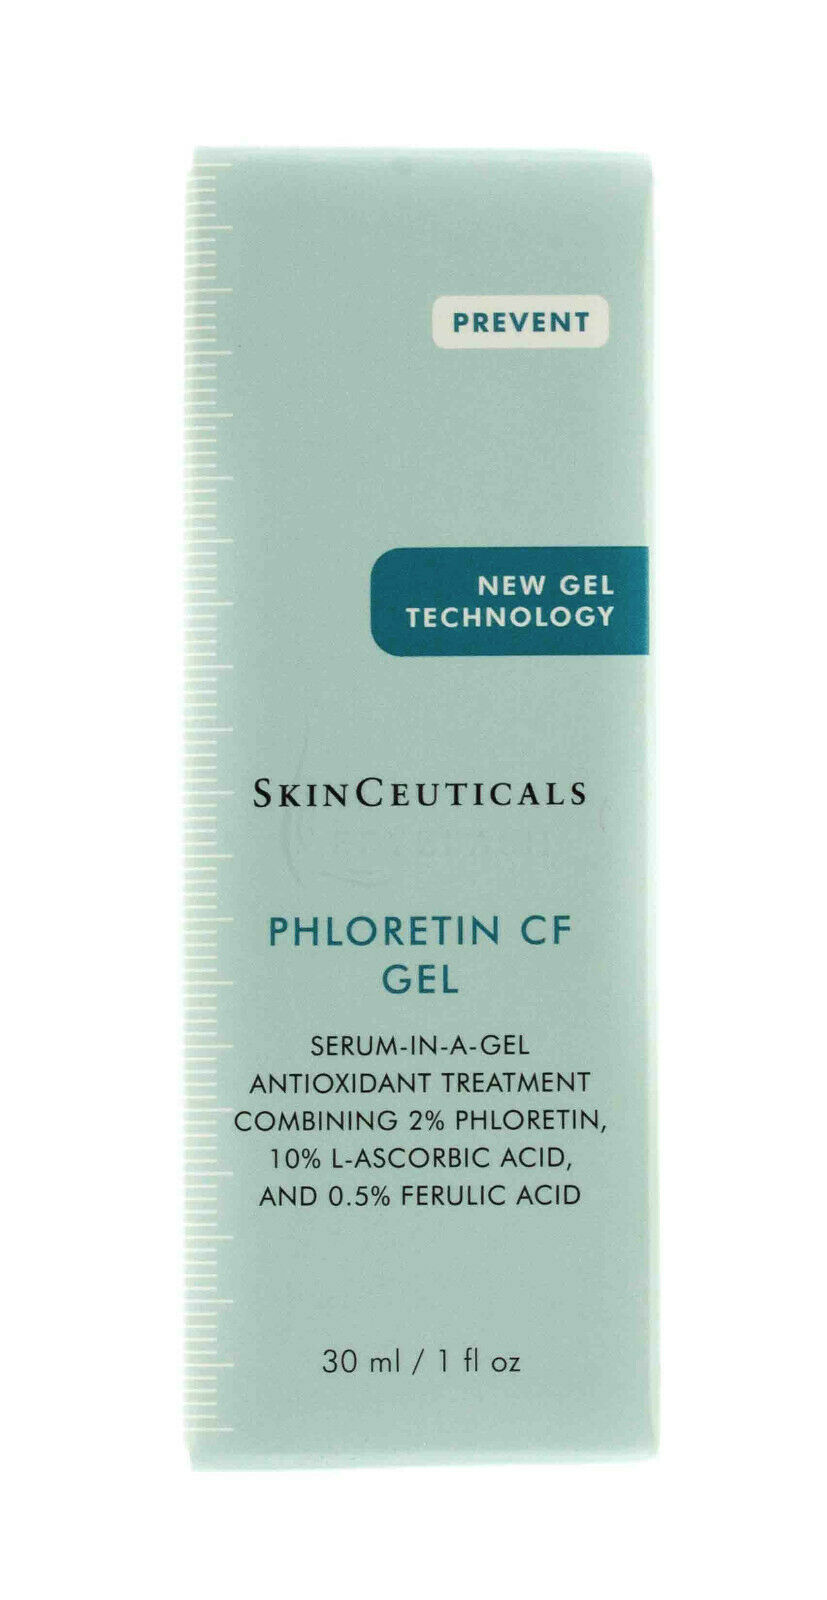 Skinceuticals Phloretin Cf Gel 1 Fl Oz/30ml Auth